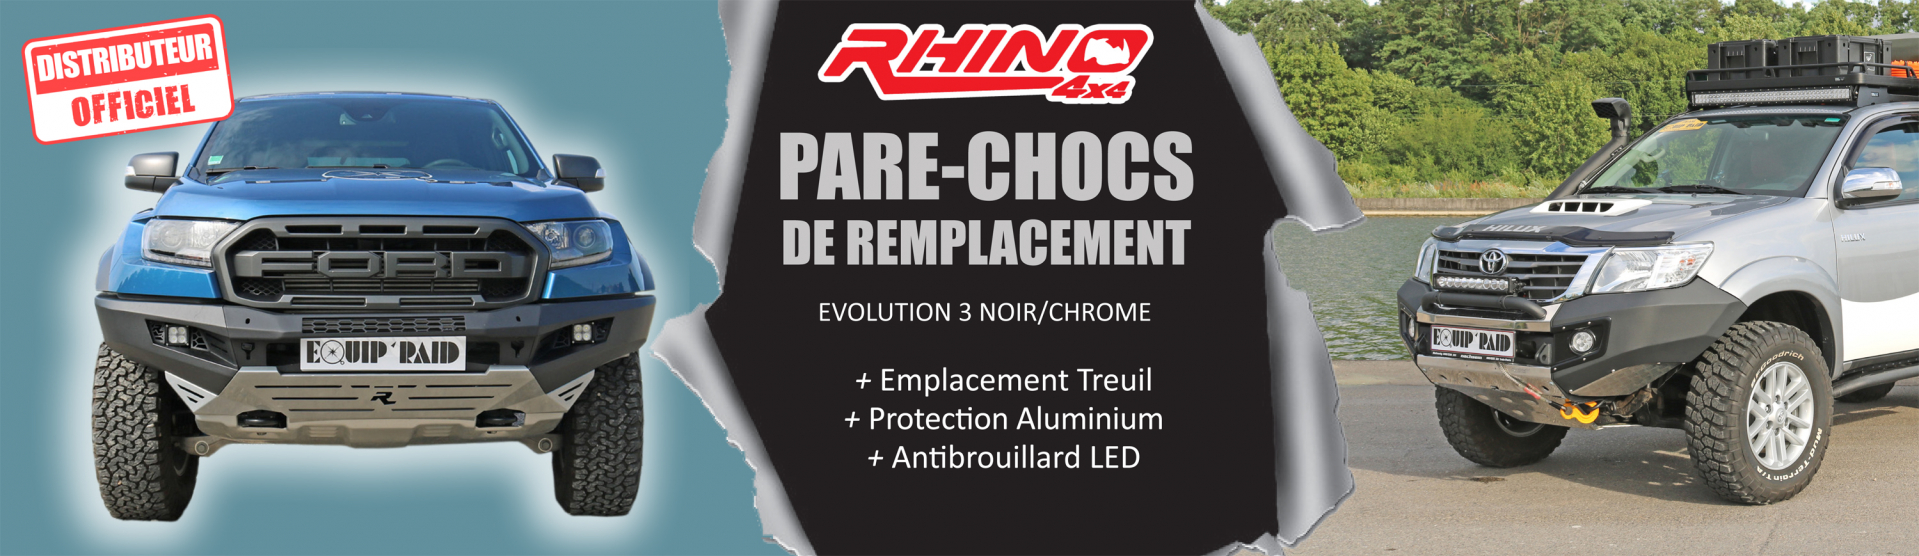 pare choc de remplacement rhino 4x4